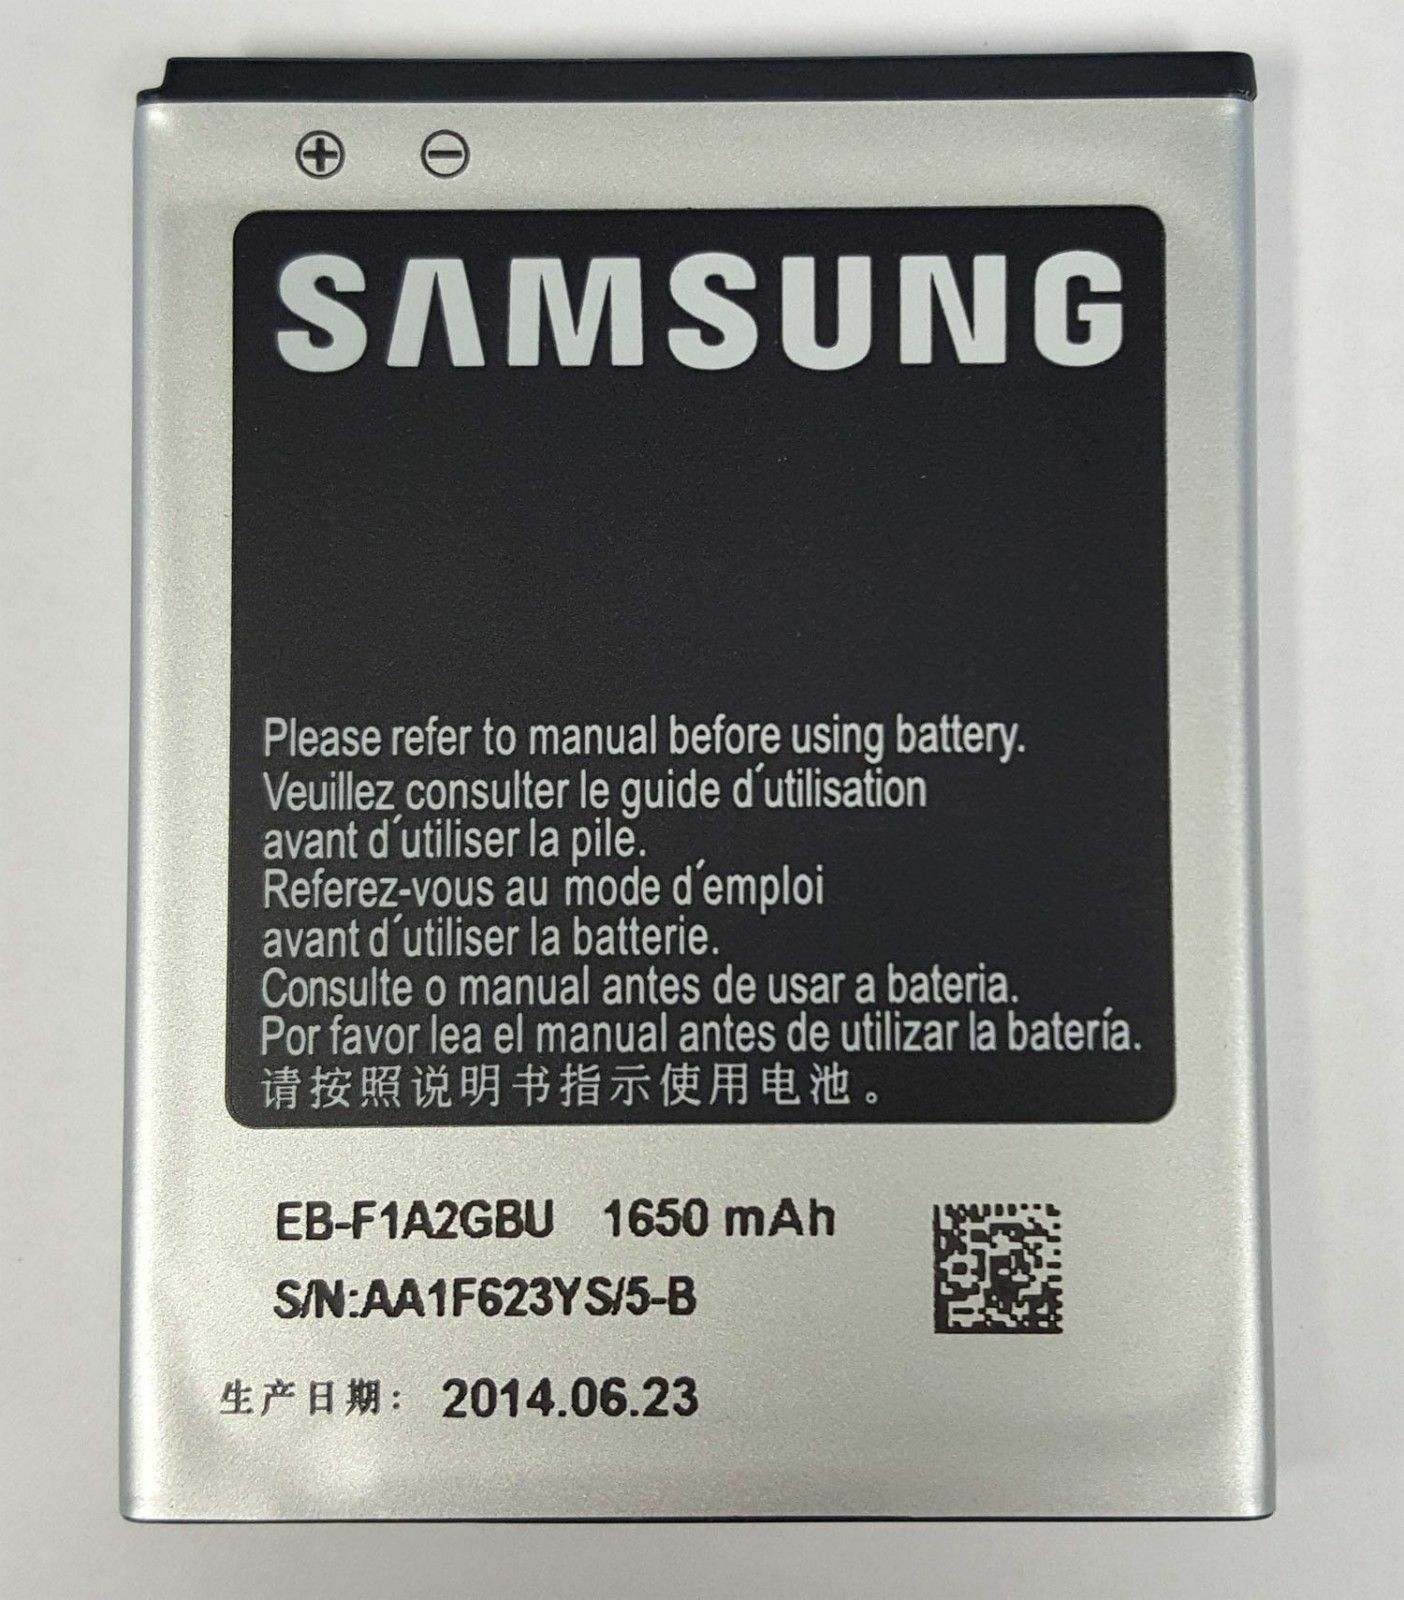 oem samsung eb f1a2gbu battery for galaxy s ii s2 sgh i777 gt i9100 rh ebay com Samsung Galaxy S3 Instruction Manual Samsung Galaxy Phone Owners Manual